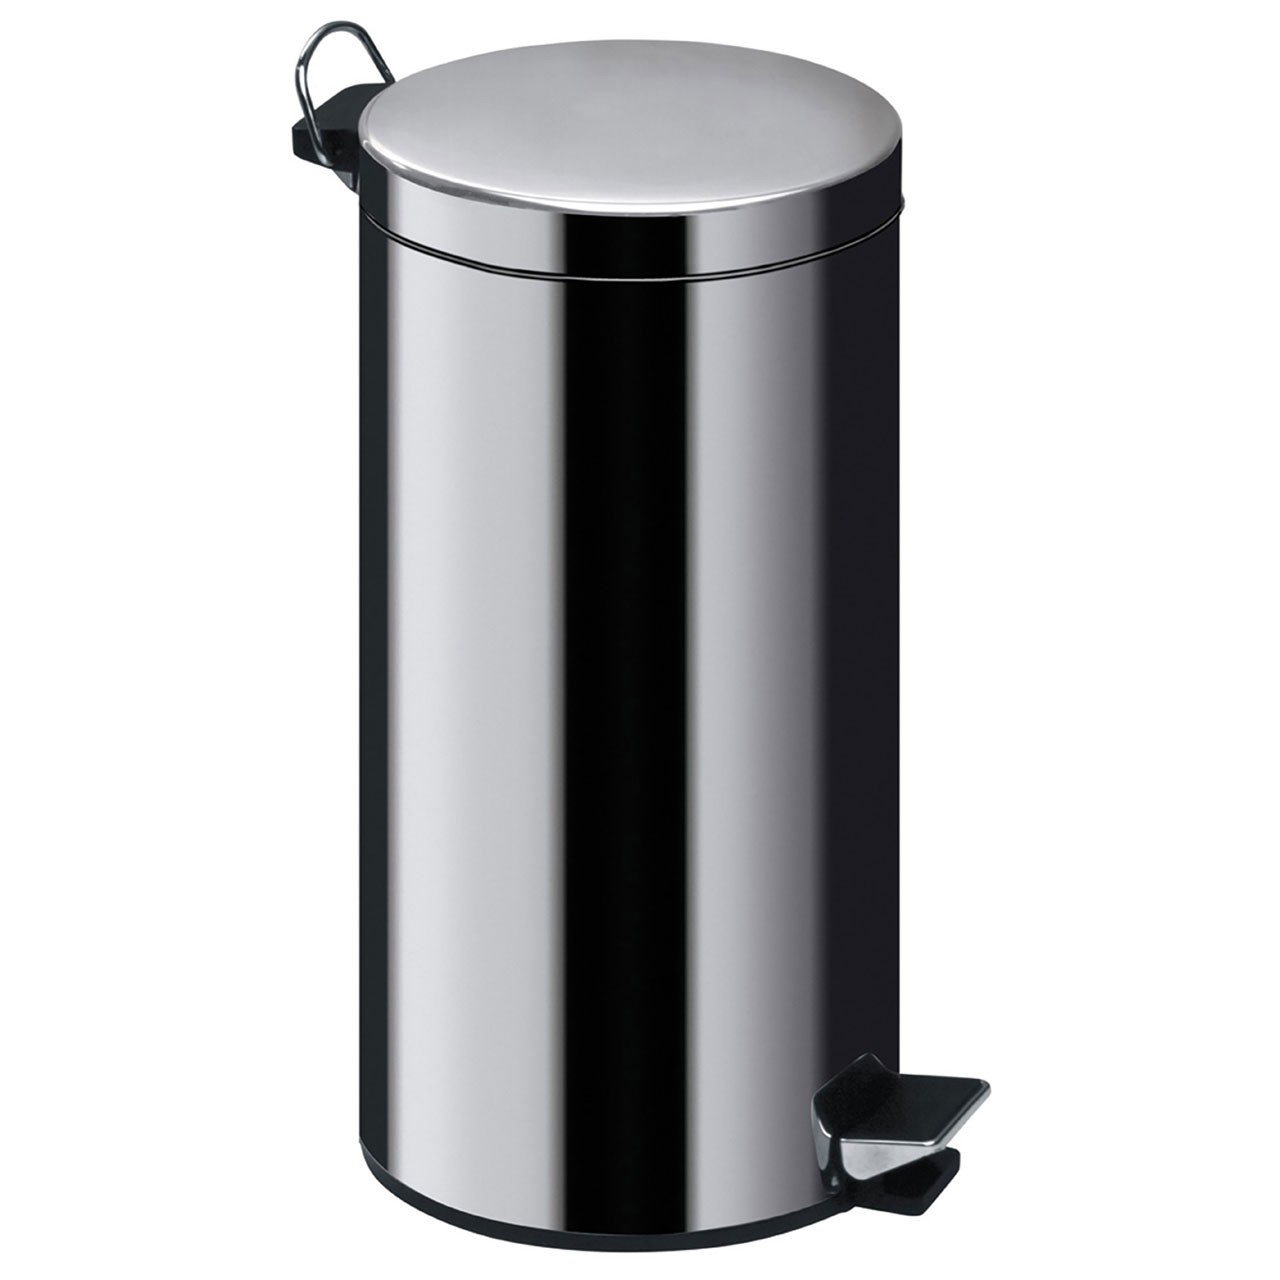 30Ltr Pedal Bin, Mirror Polished Stainless Steel